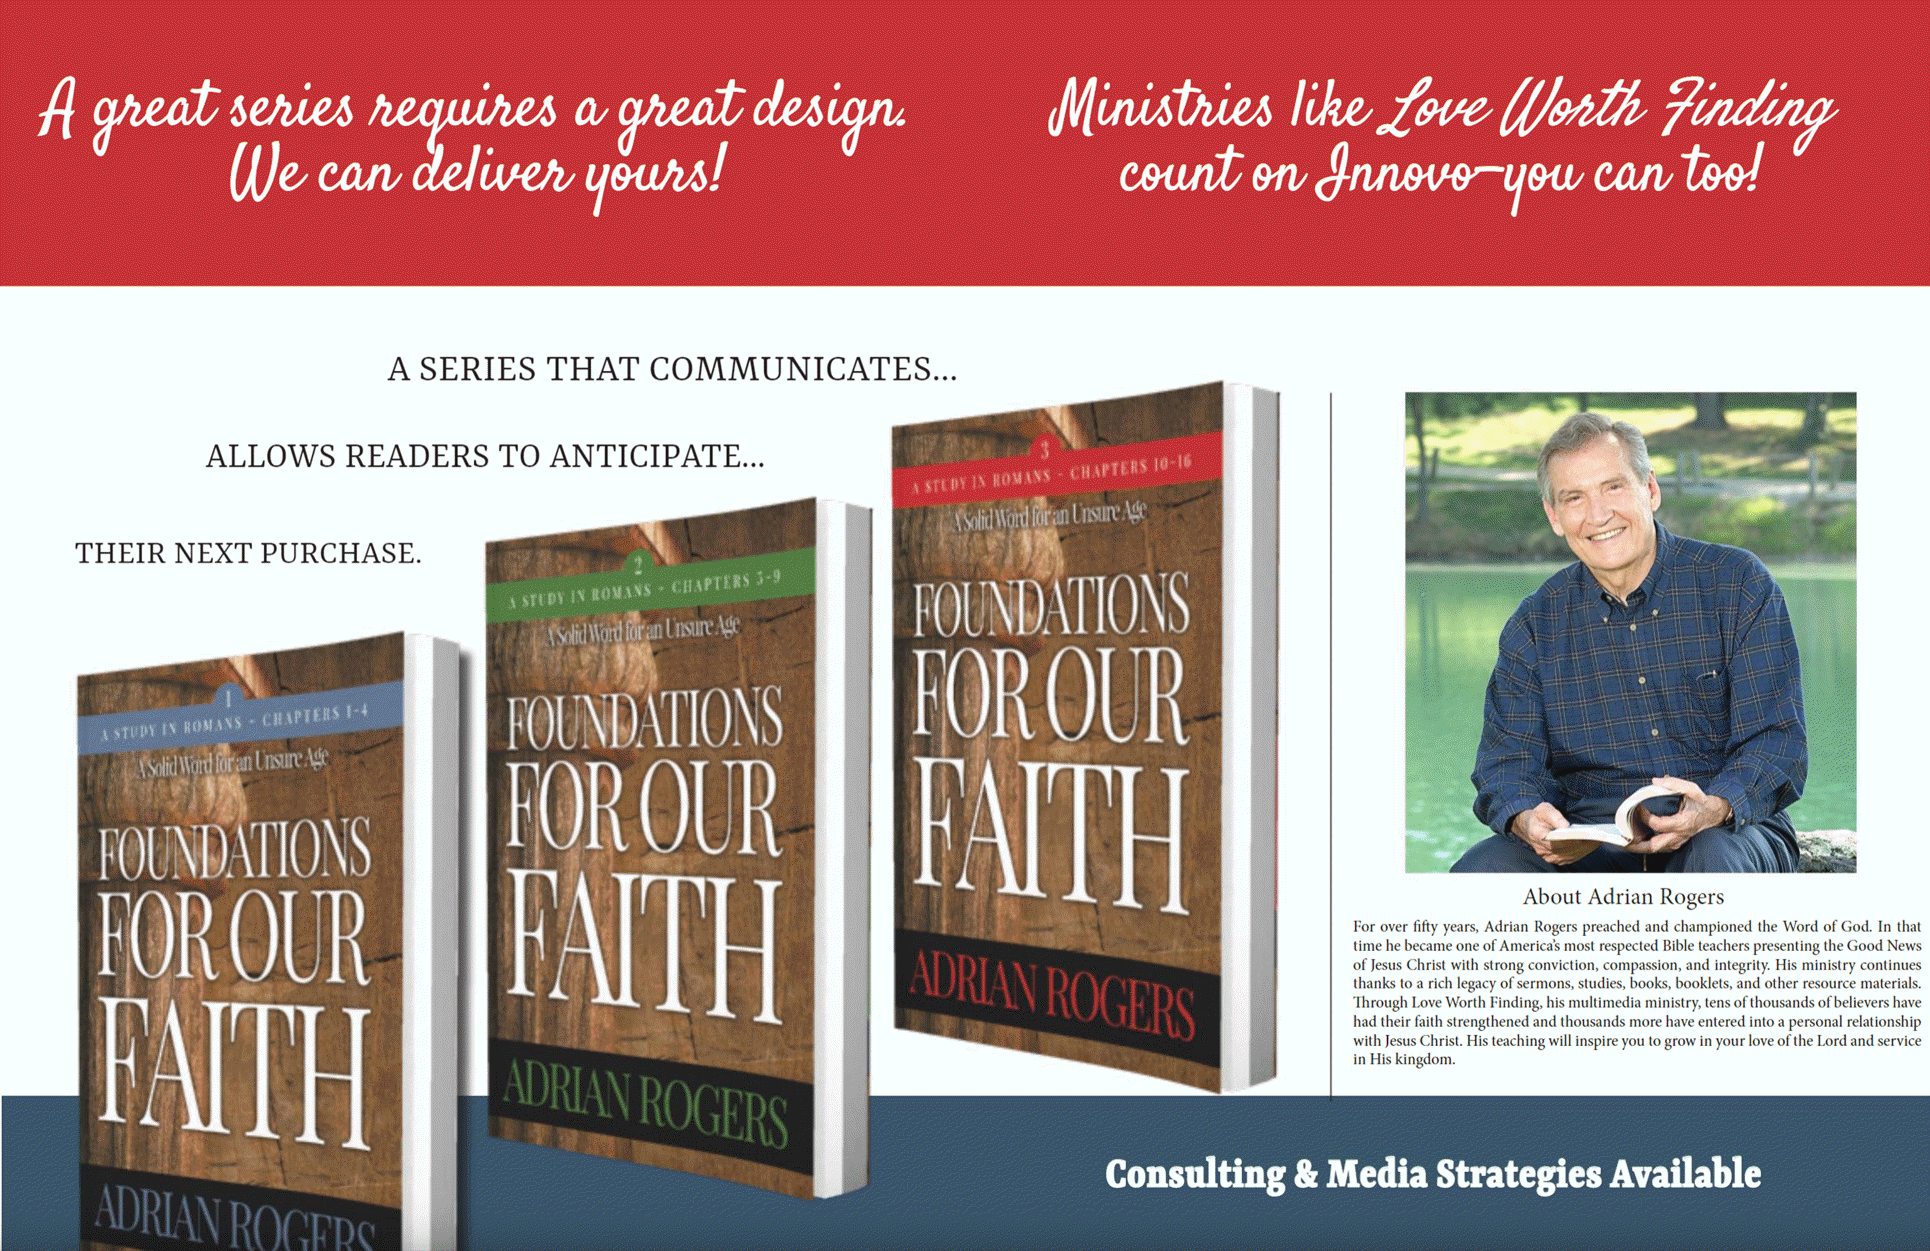 Innovo's Book Series Design and Publishing for Christian Authors, Artists, and Ministries